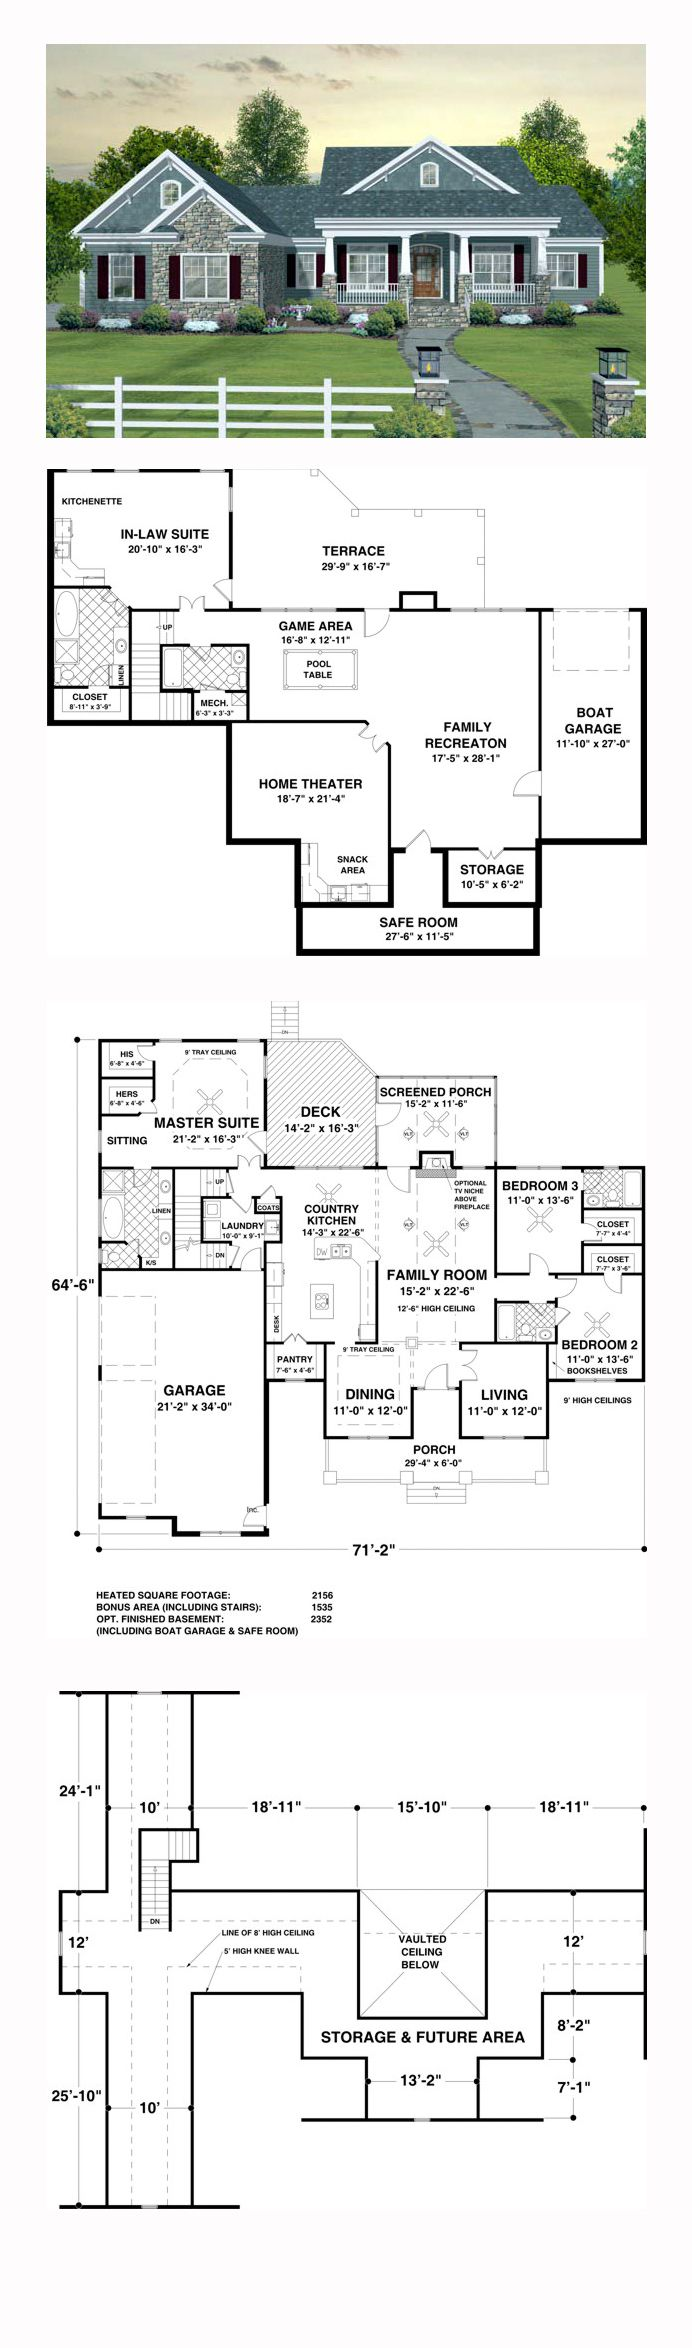 best 25 cool house designs ideas on pinterest cool homes new country style cool house plan id total living area 2156 sq 3 bedrooms and 3 bathrooms